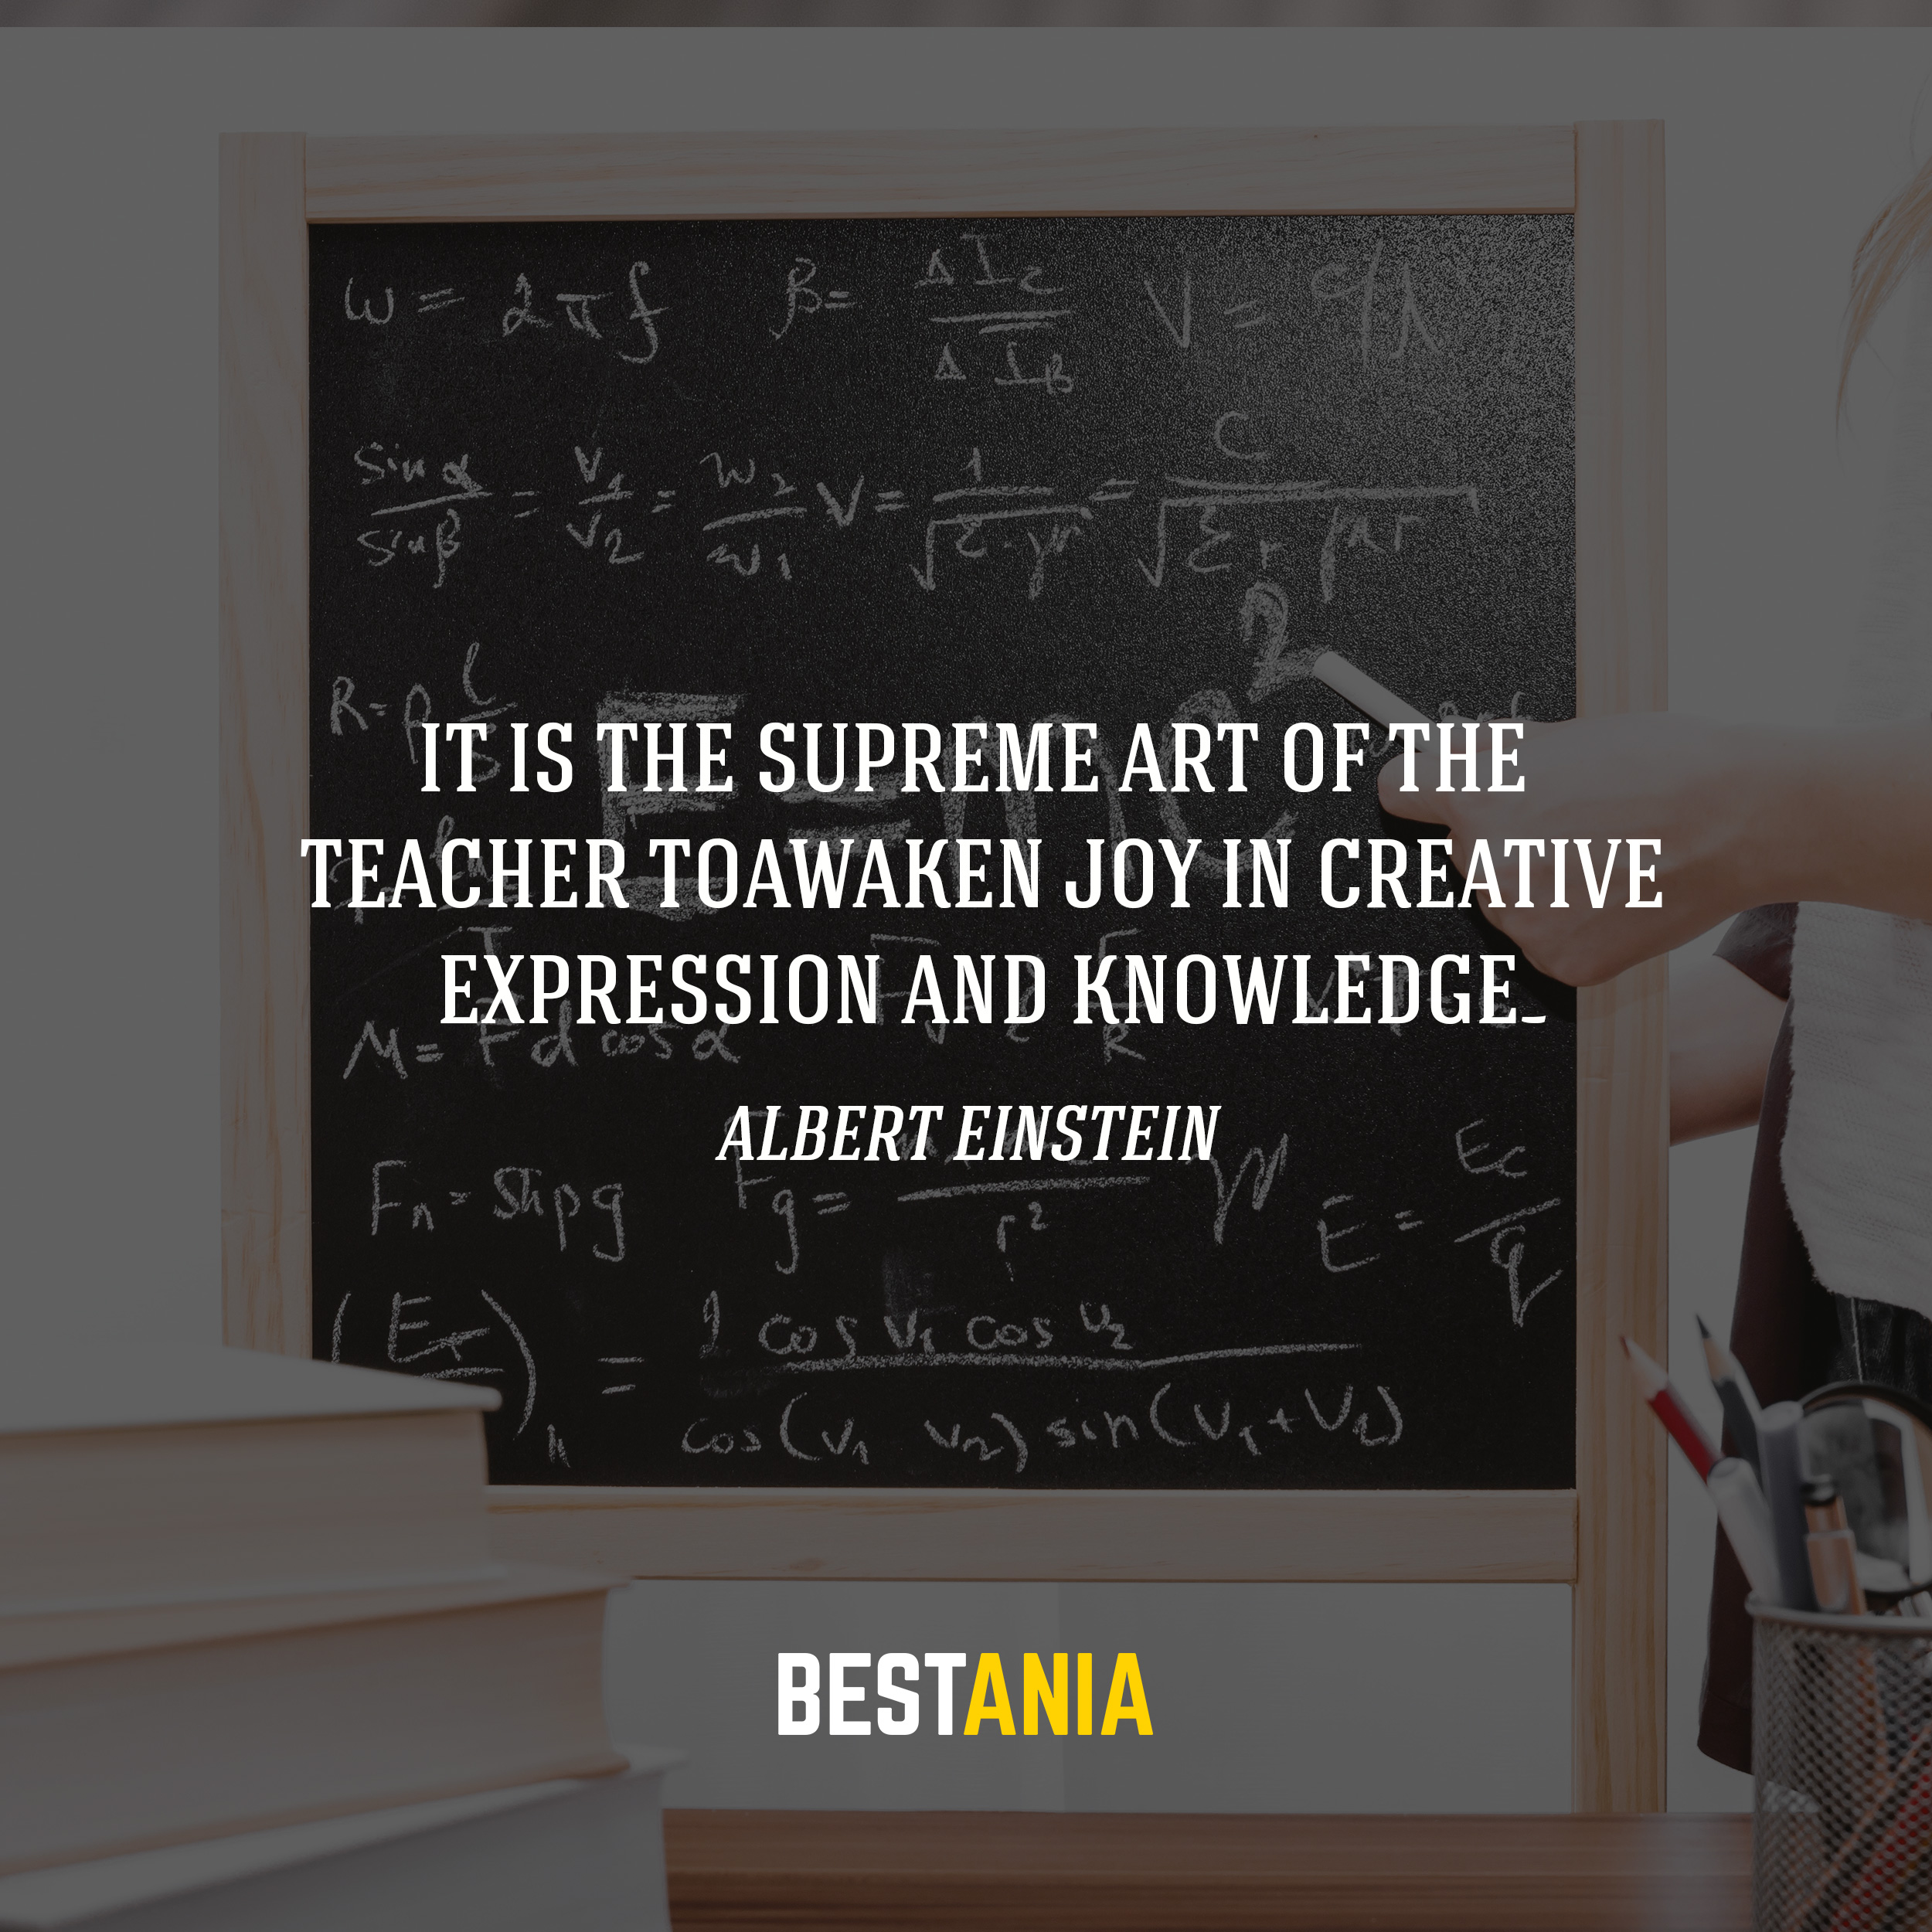 It is the supreme art of the teacher to awaken joy in creative expression and knowledge. Albert Einstein